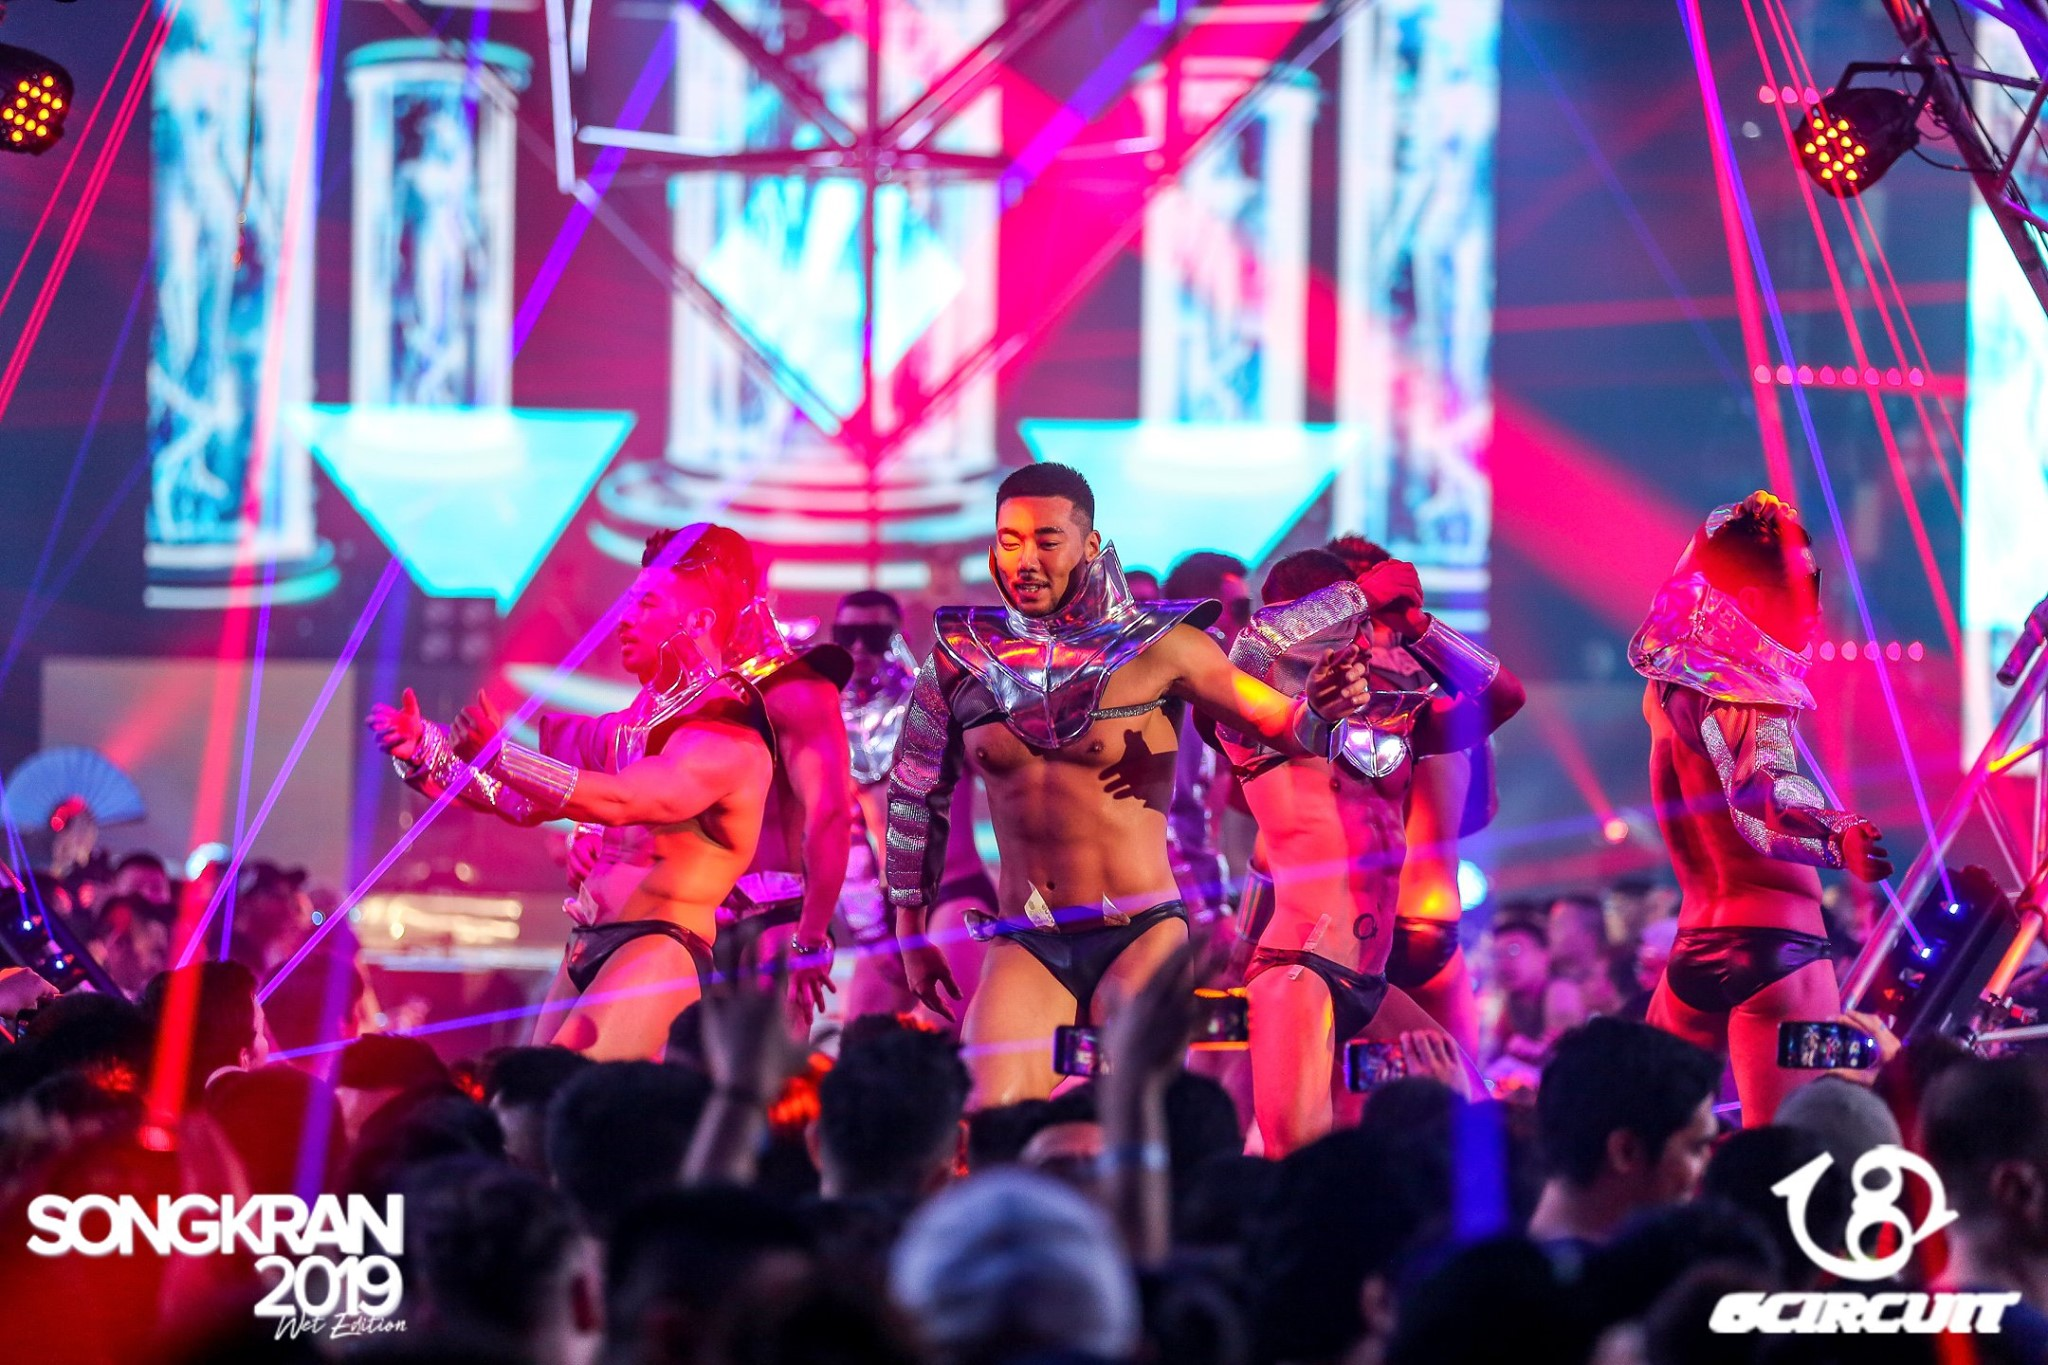 FINAL PHOTO ALBUM OF MAIN PARTY FOR SONGKRAN2019